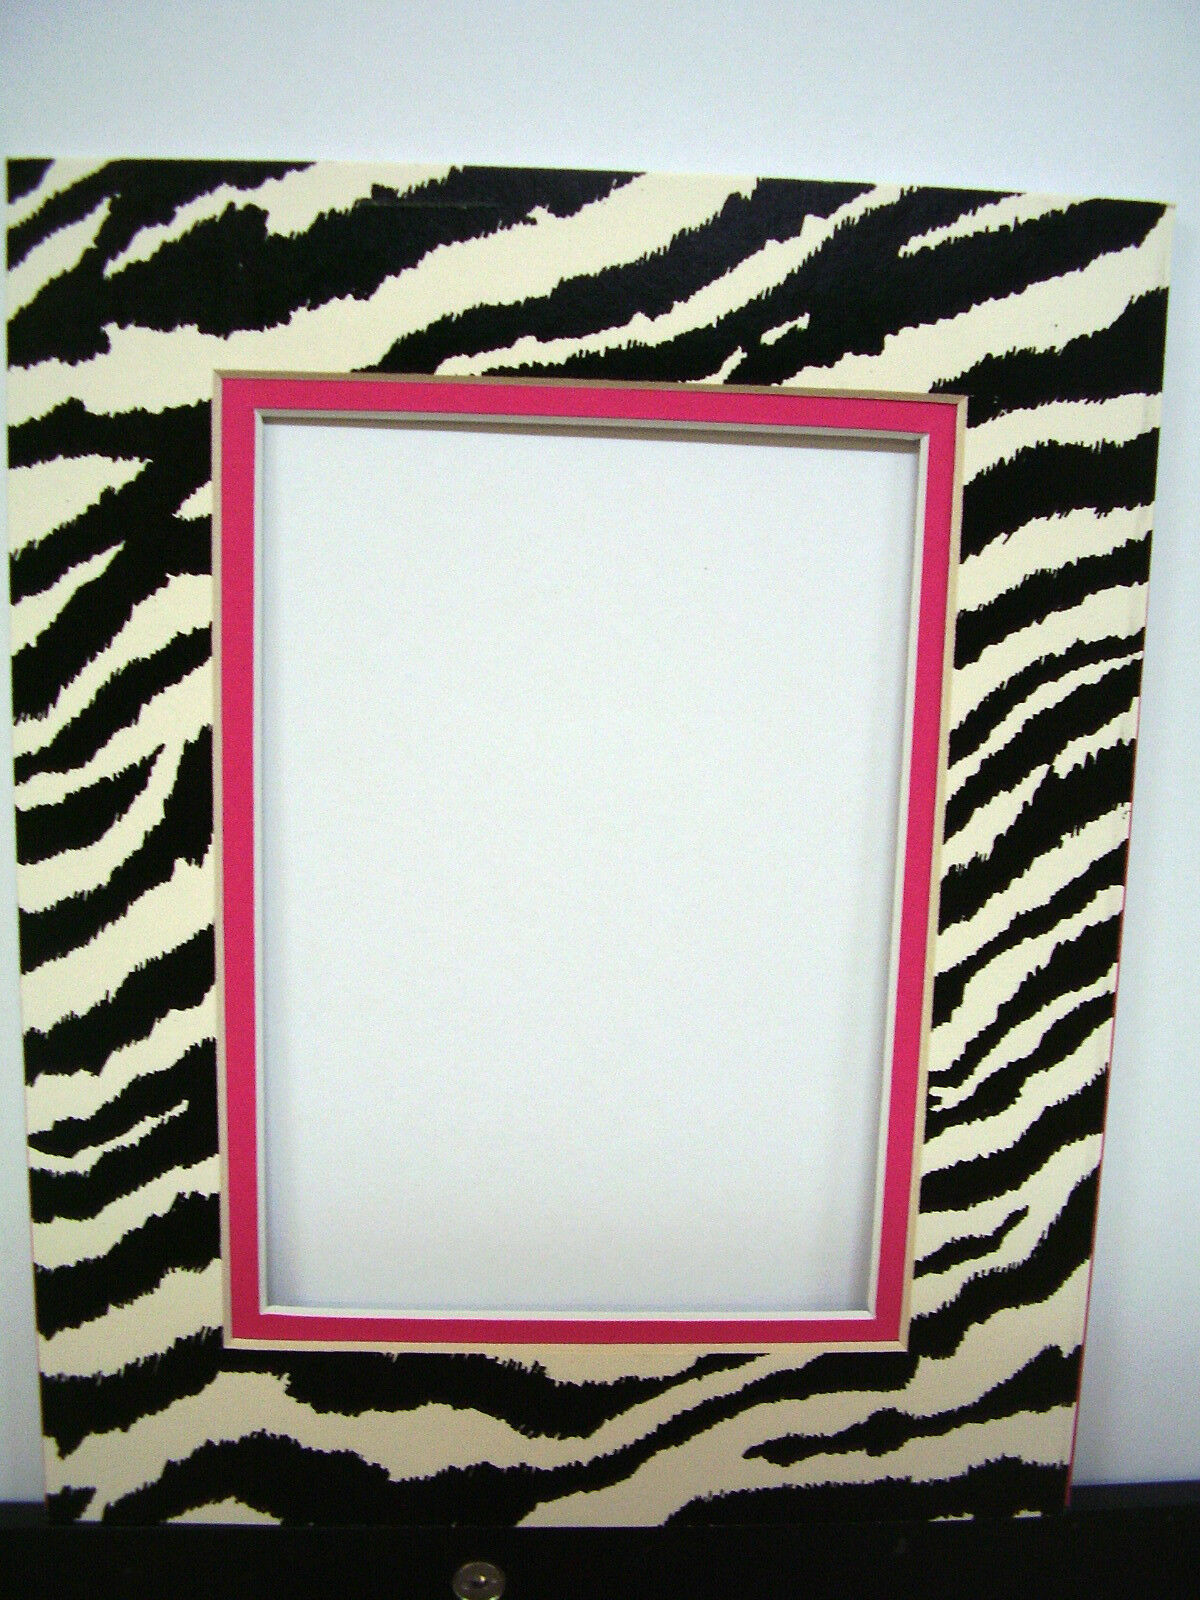 Picture frame double mat 8x10 for 4x6 photo zebra black white hot picture 1 of 2 jeuxipadfo Gallery